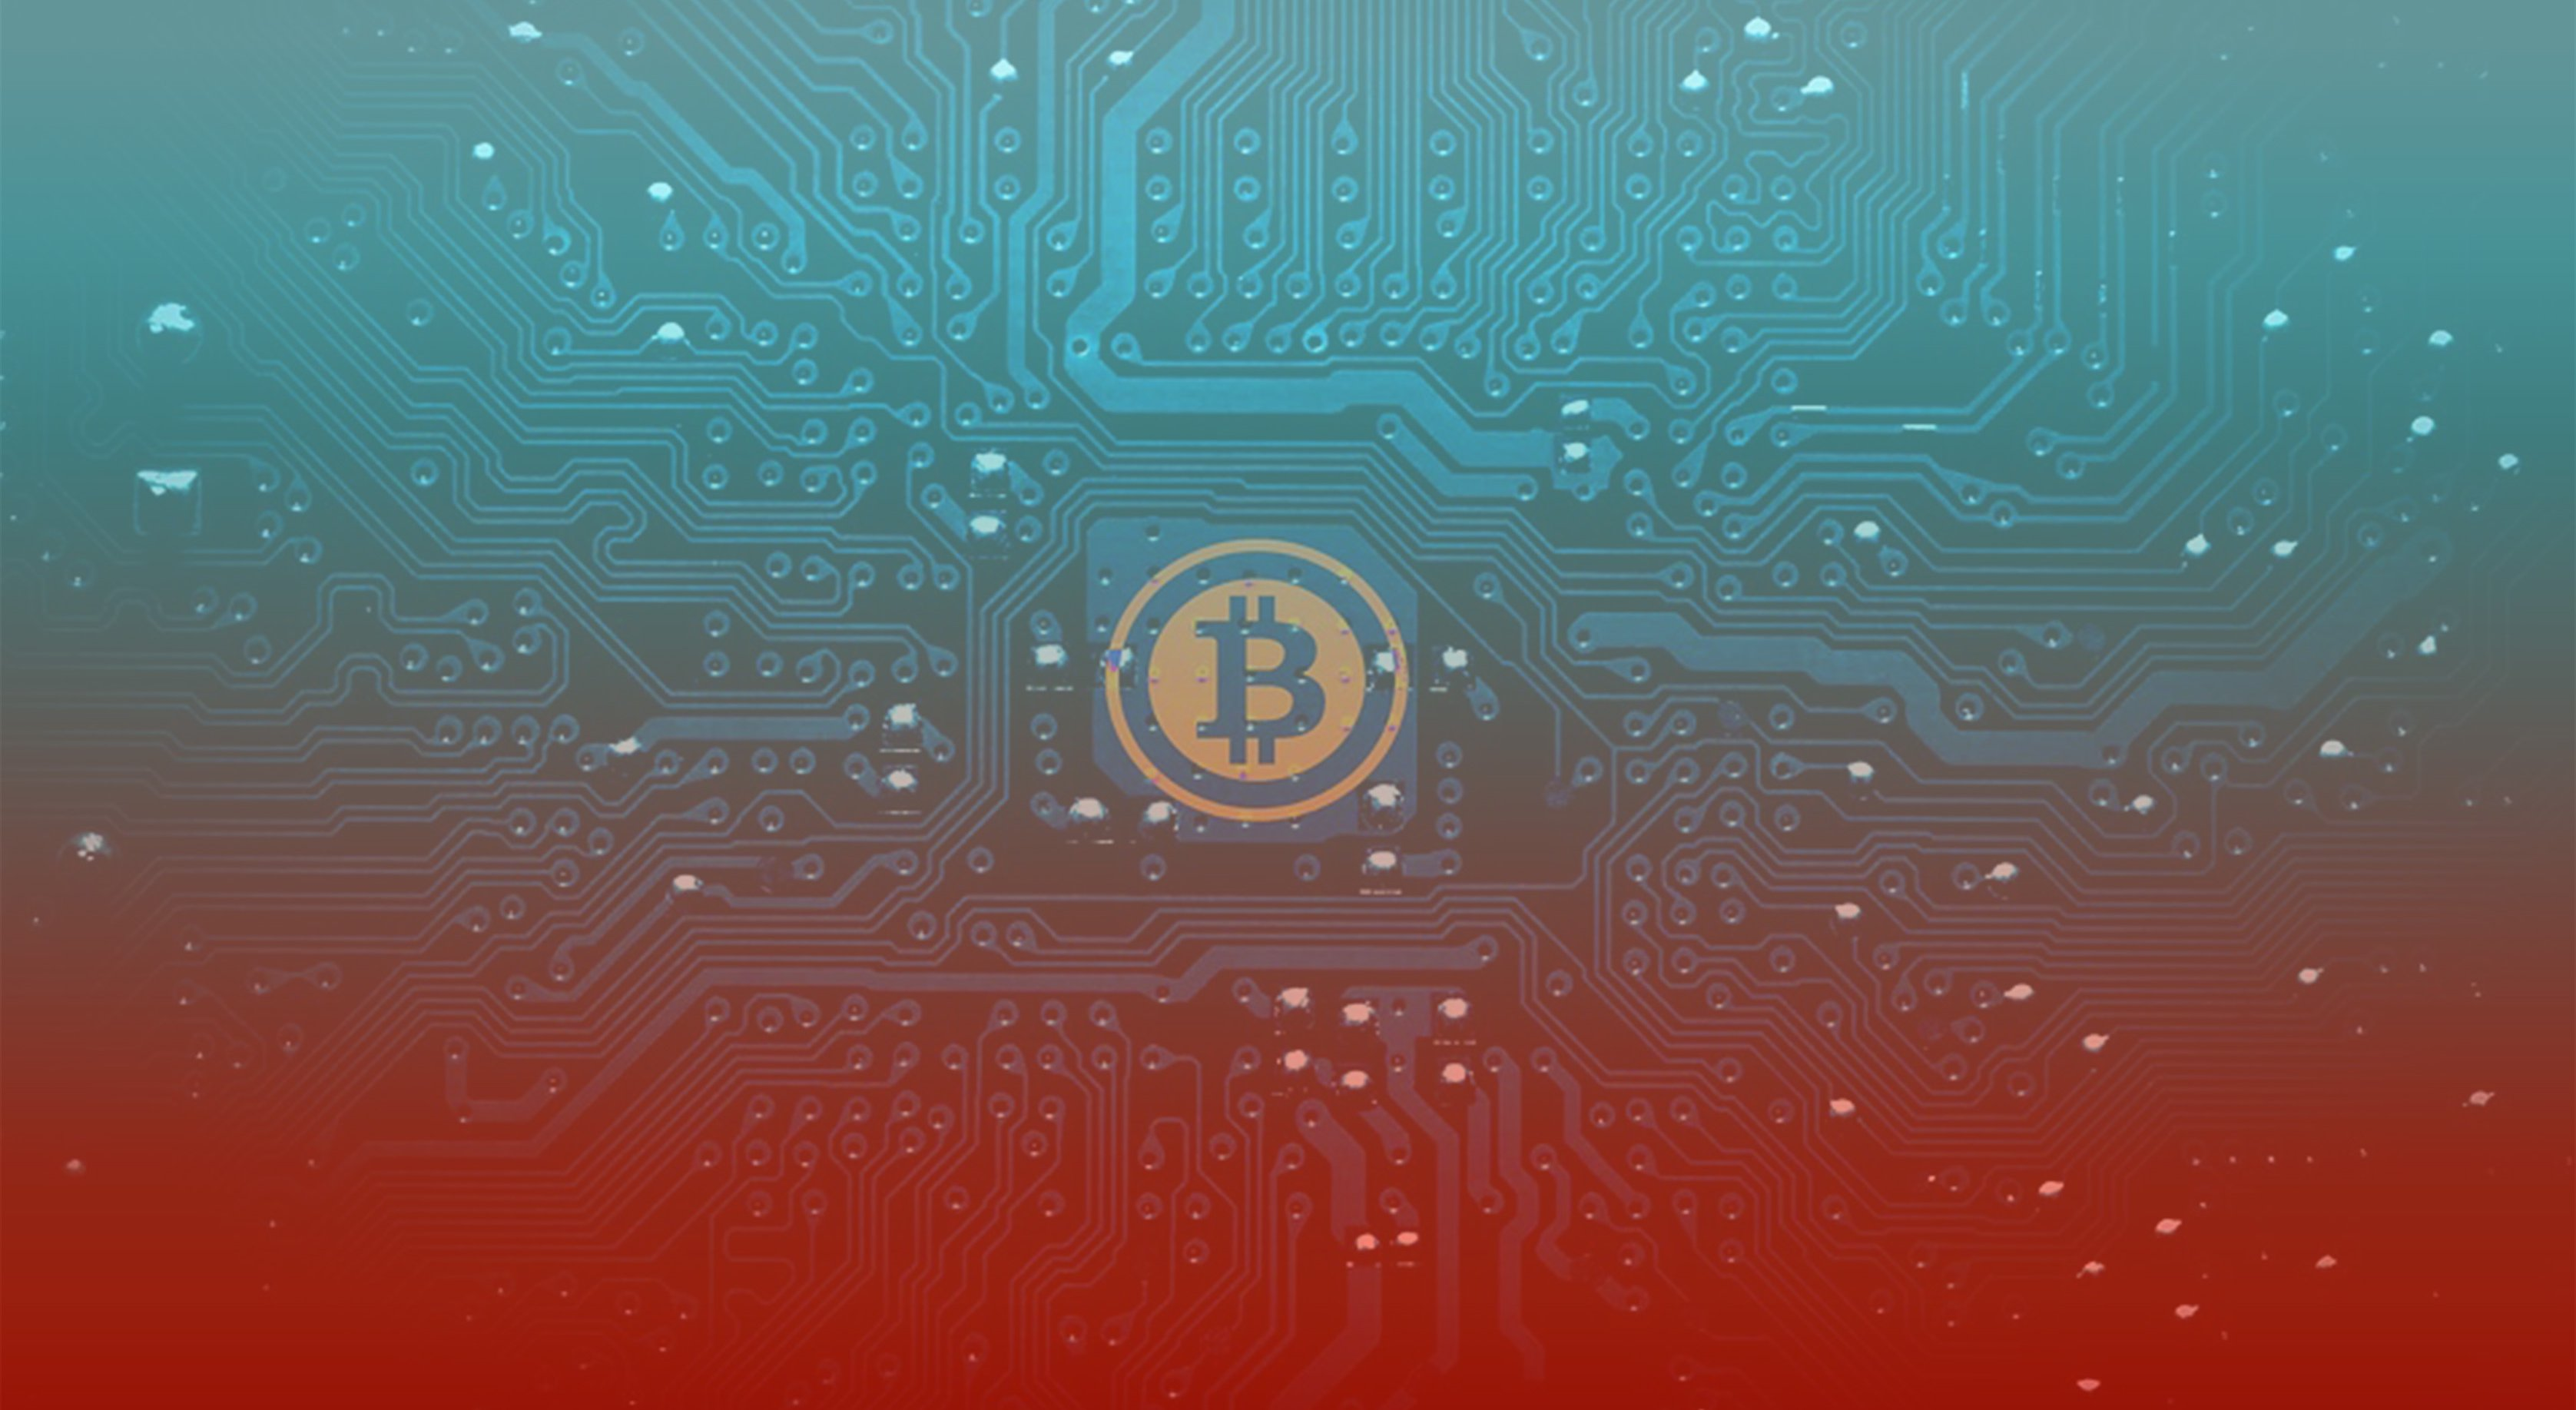 Disruption Update: Revisiting Blockchain and Bitcoin